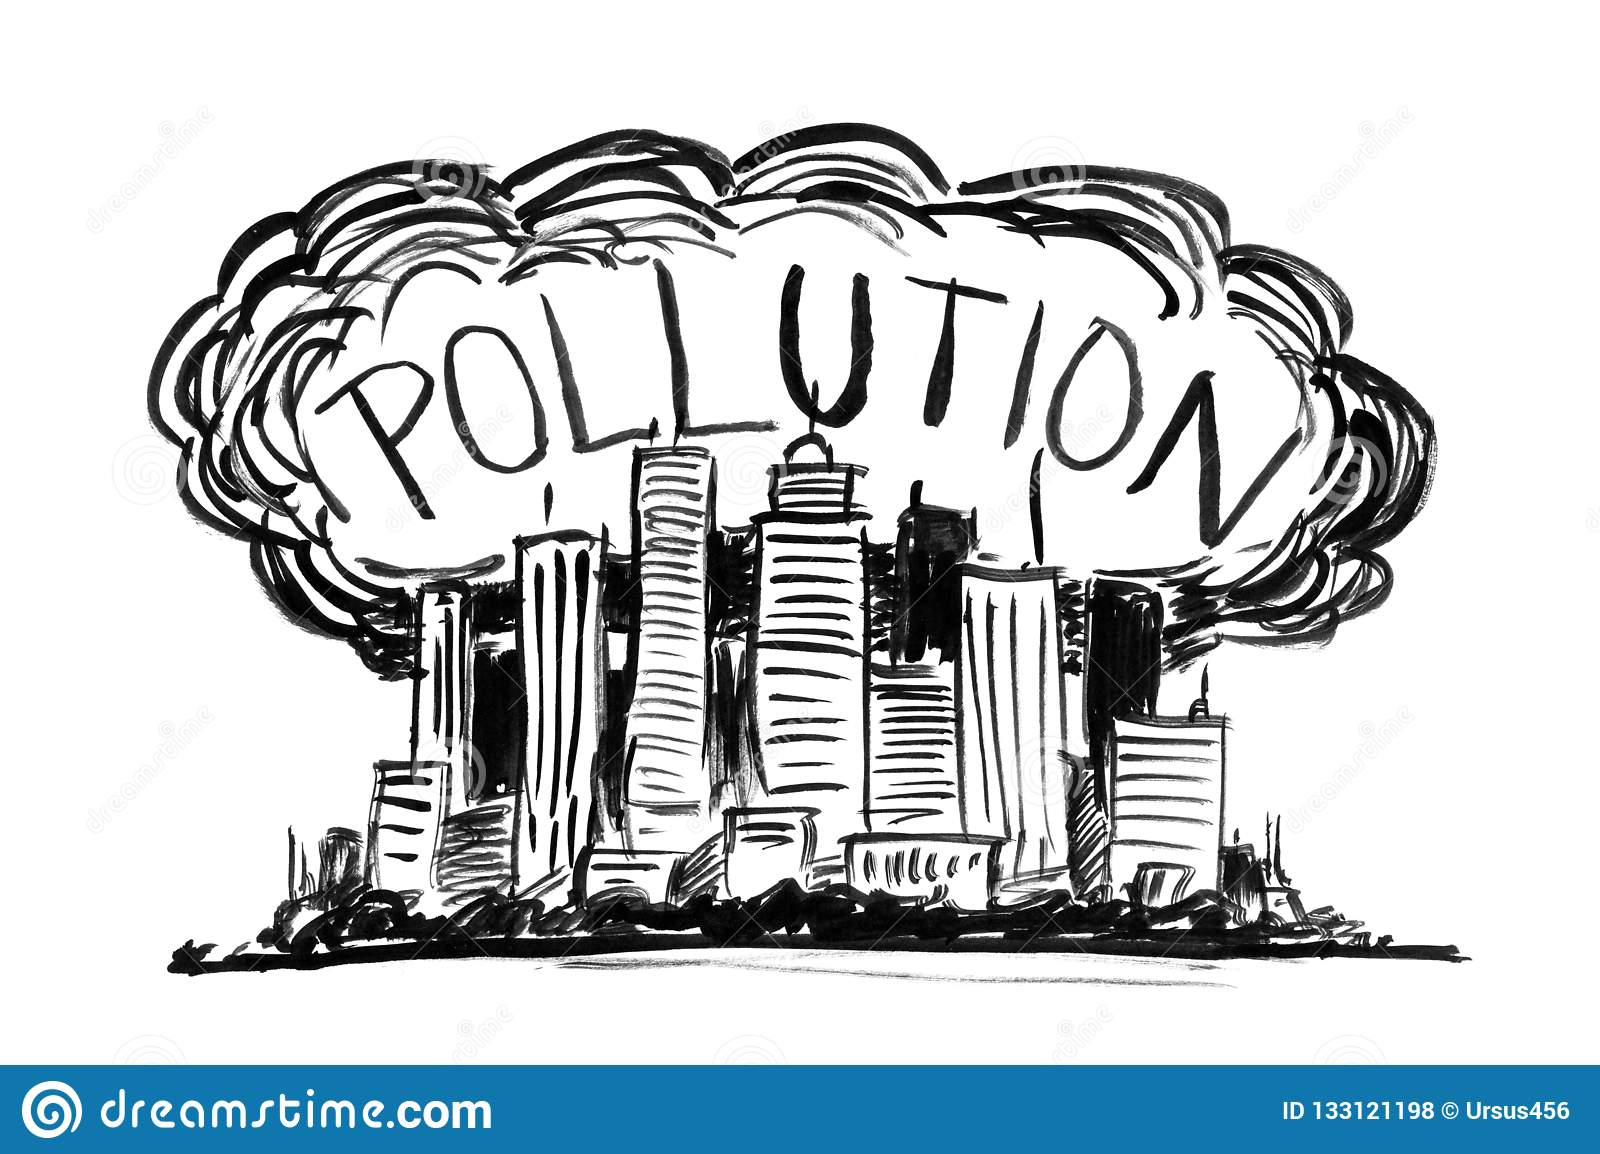 Black brush and ink artistic rough hand drawing of high rise building and smog covering the city environmental concept of toxic and deadly air pollution